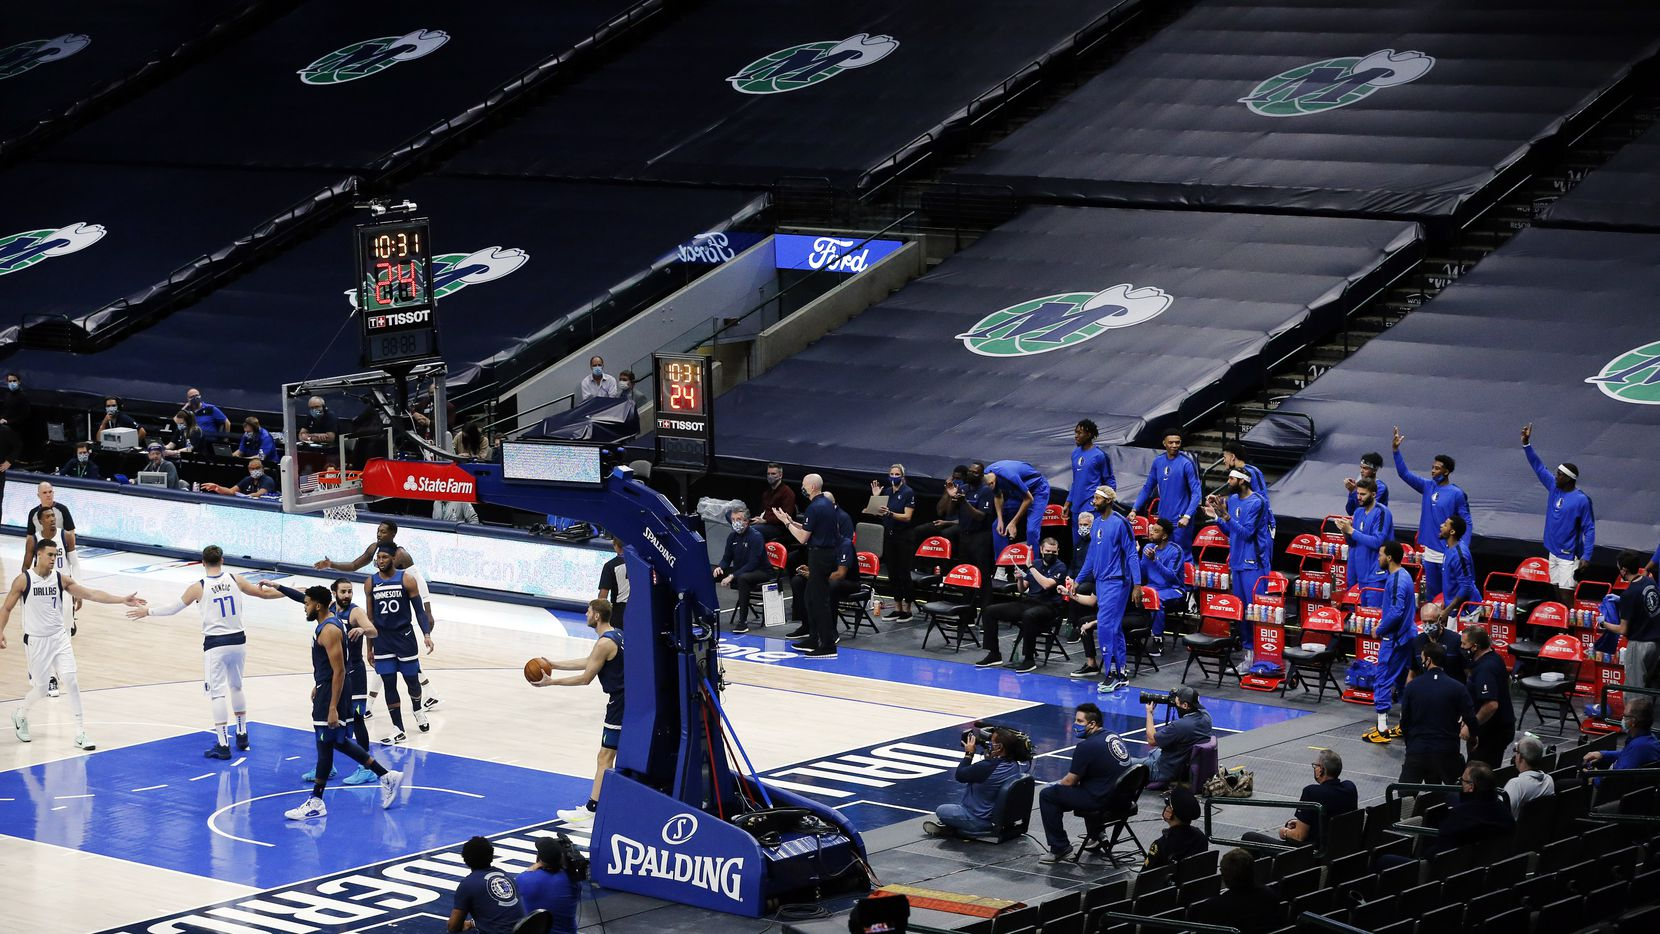 Before the empty stands of American Airlines Center, Mavericks guard Luka Doncic (77) is congratulated by teammates after drawing a foul in a preseason game against the Timberwolves on Thursday, Dec. 17, 2020. It was the first Mavs game inside the arena since the NBA shutdown earlier this year to COVID-19.